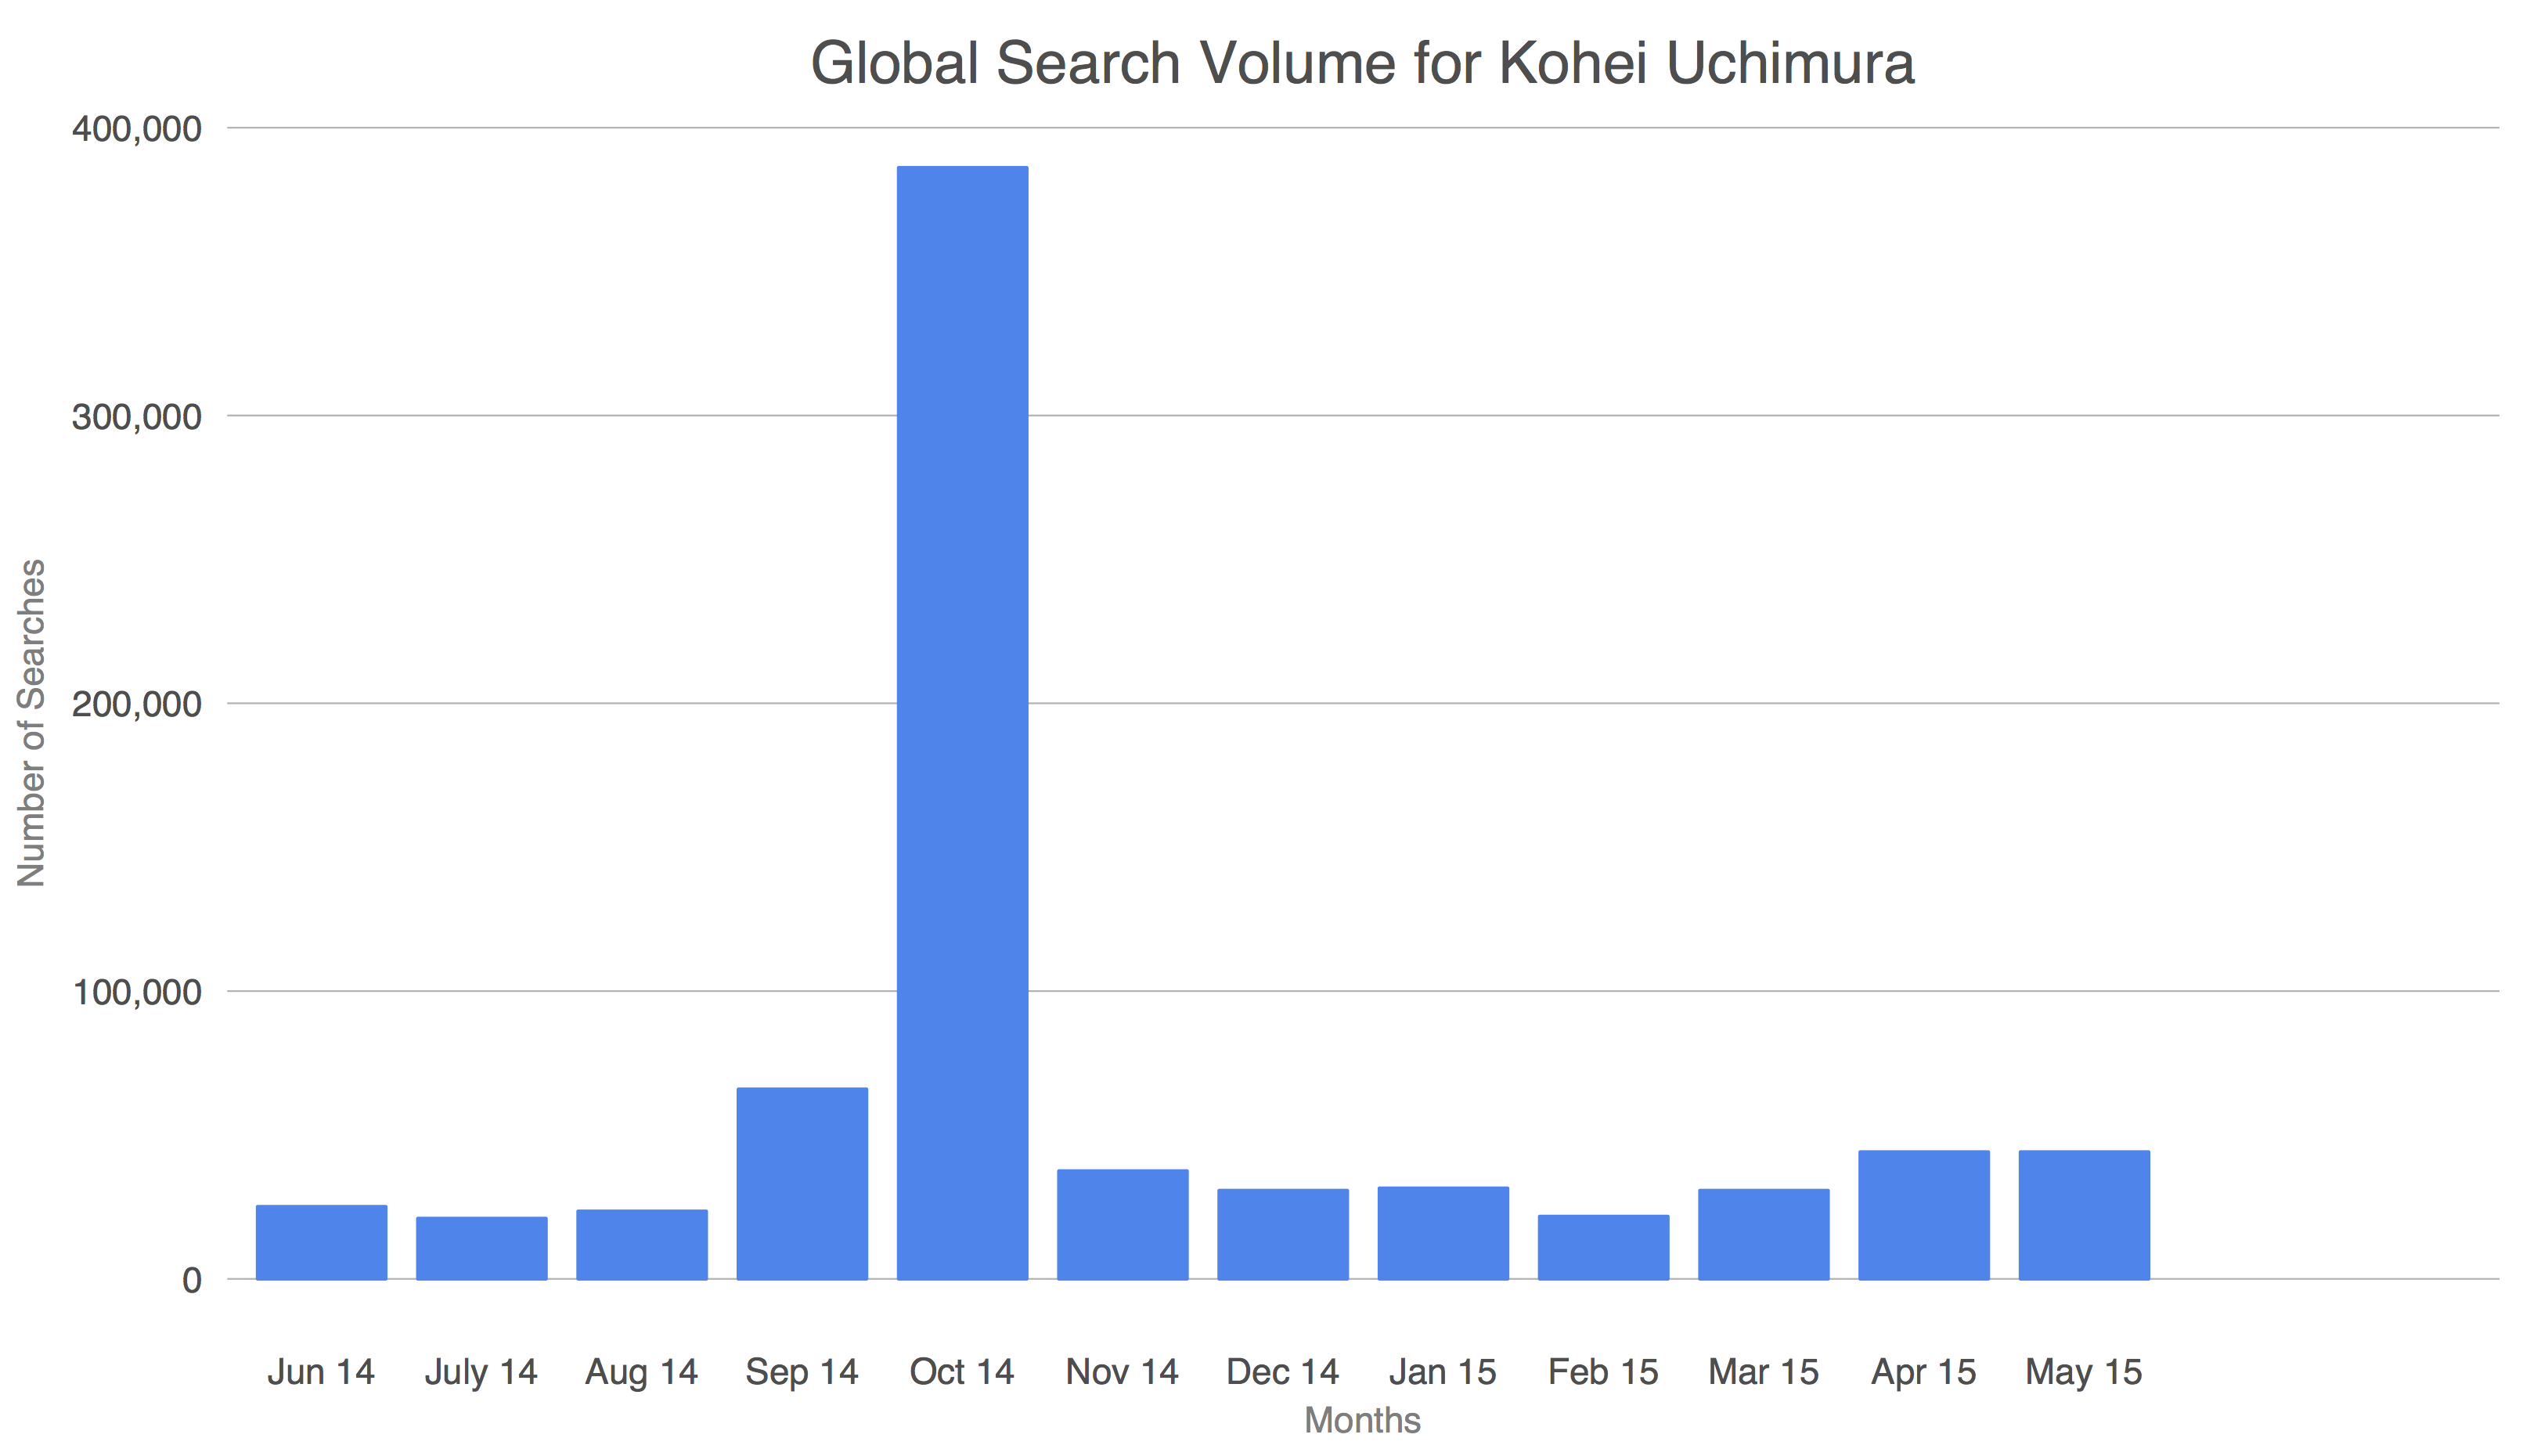 Global Search Volume - Kohei Uchimura